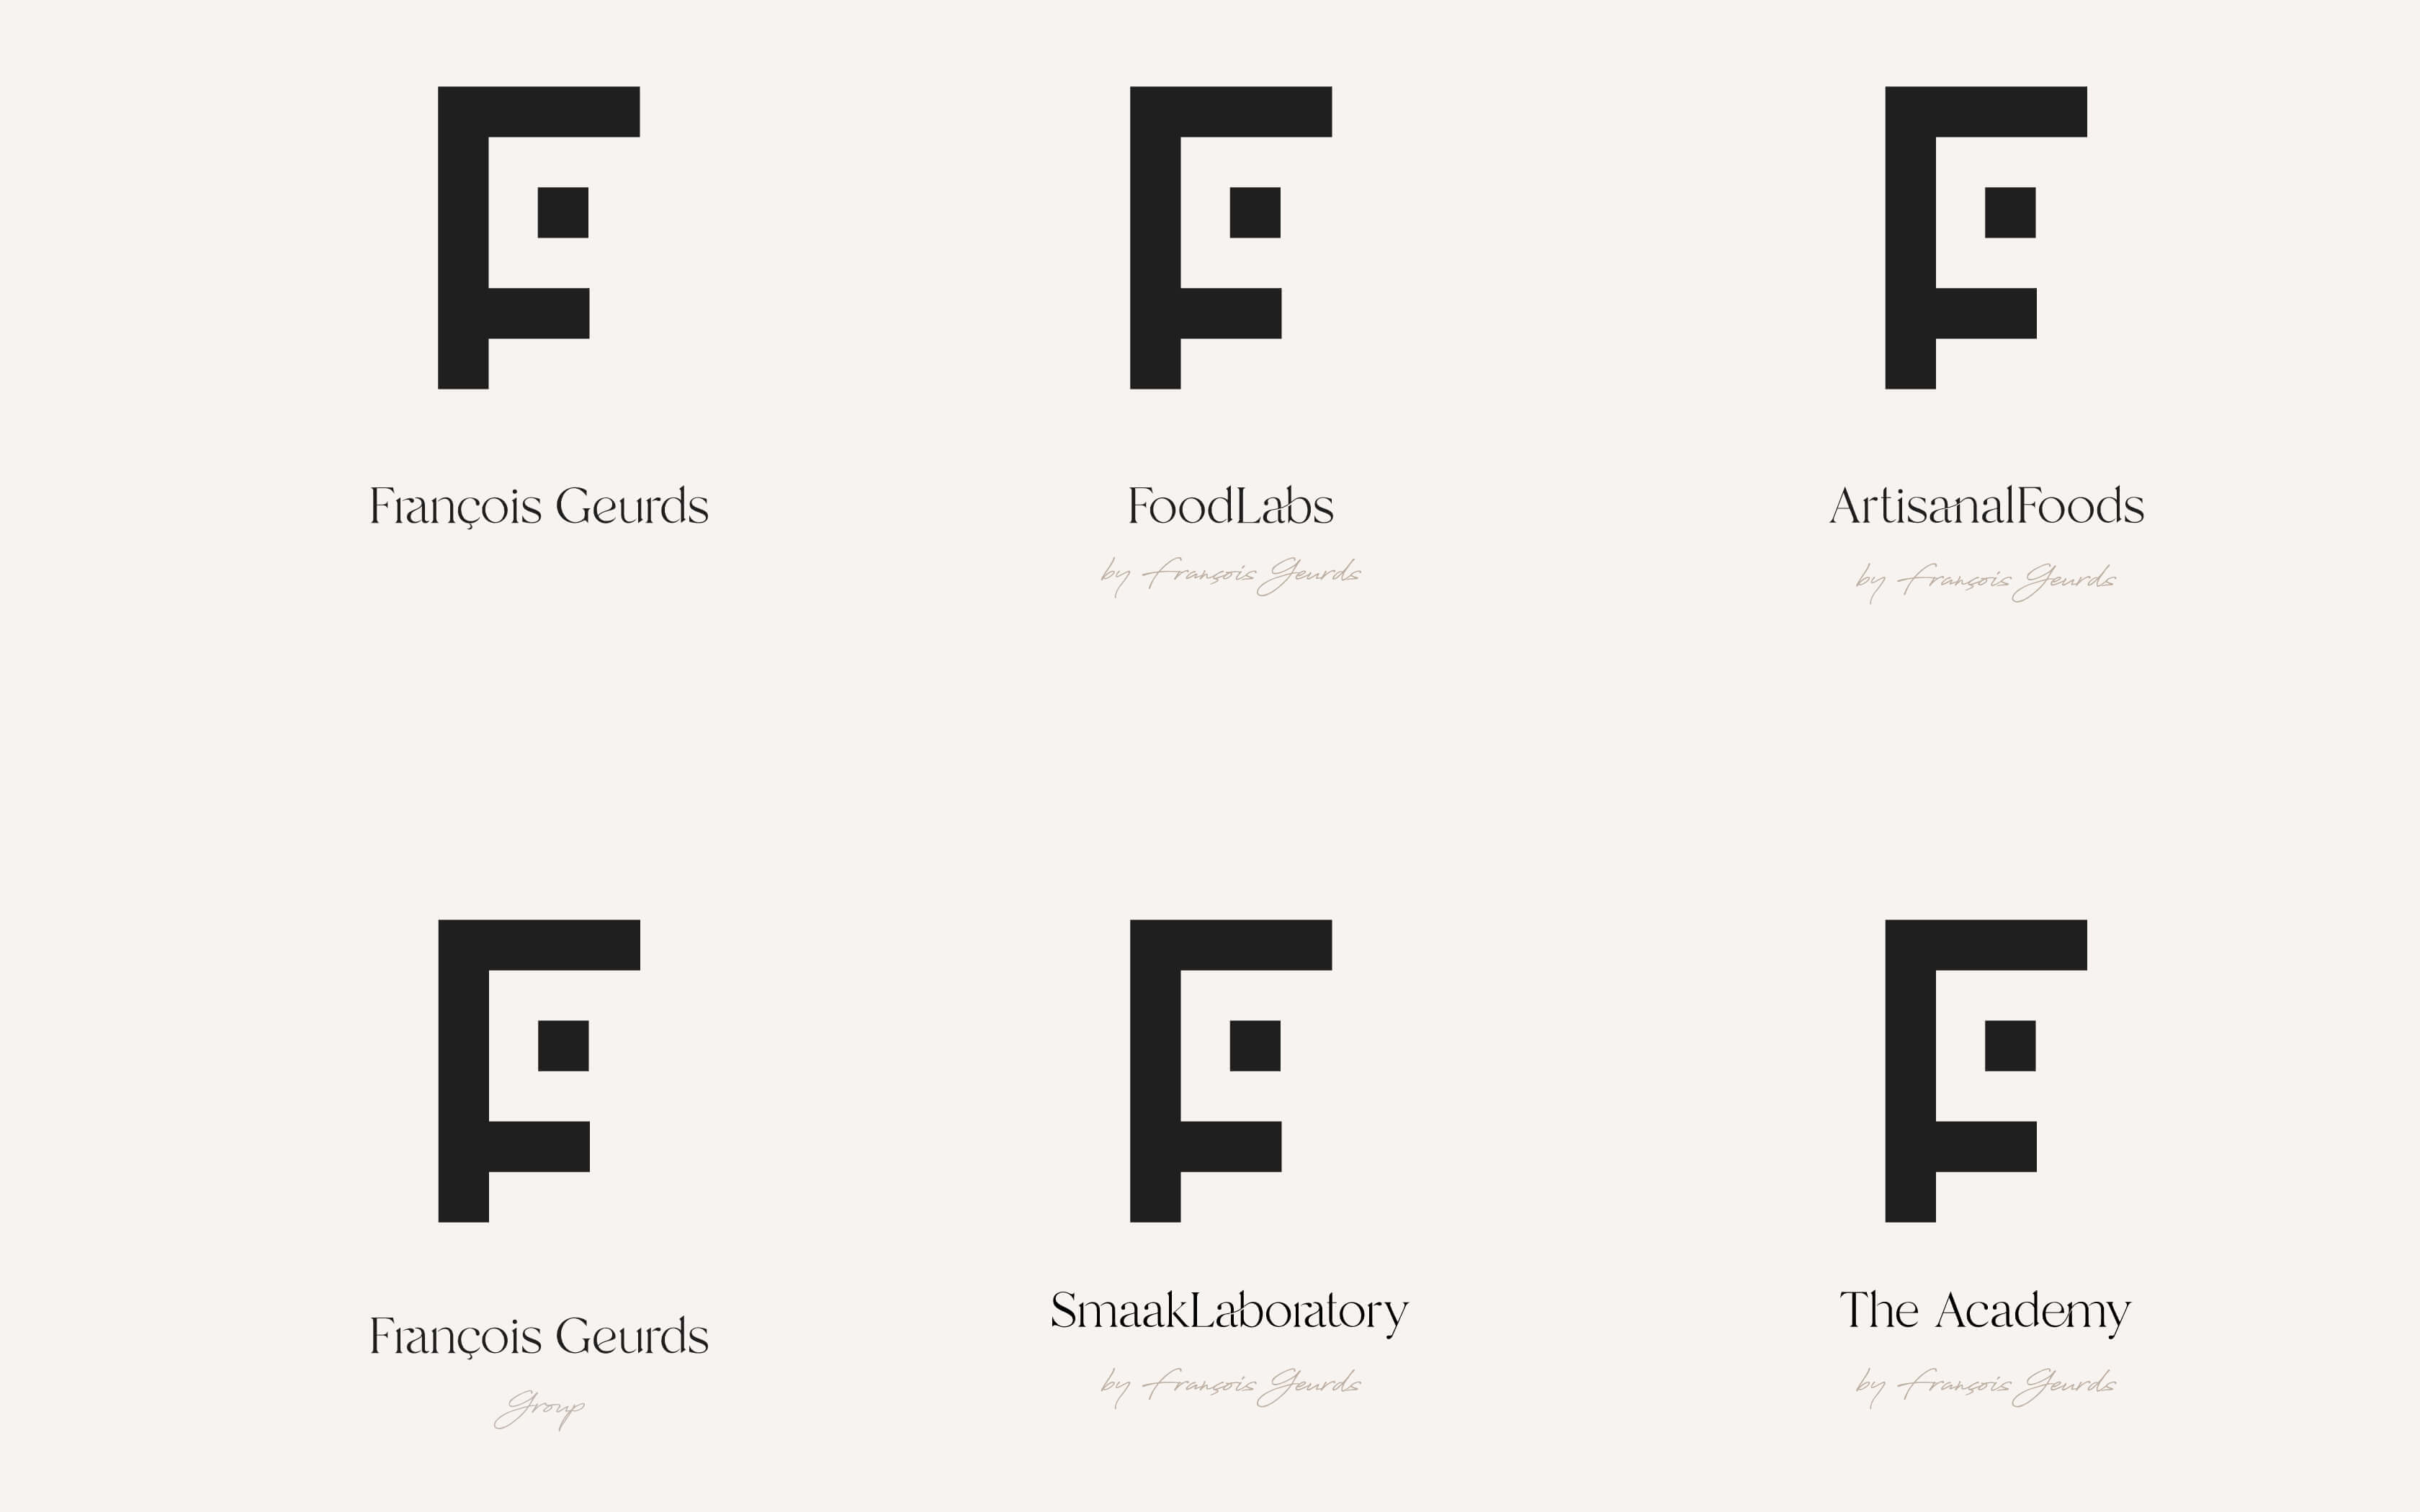 Francois-Geurds-Logo-family-Iconomic-Network-Branding